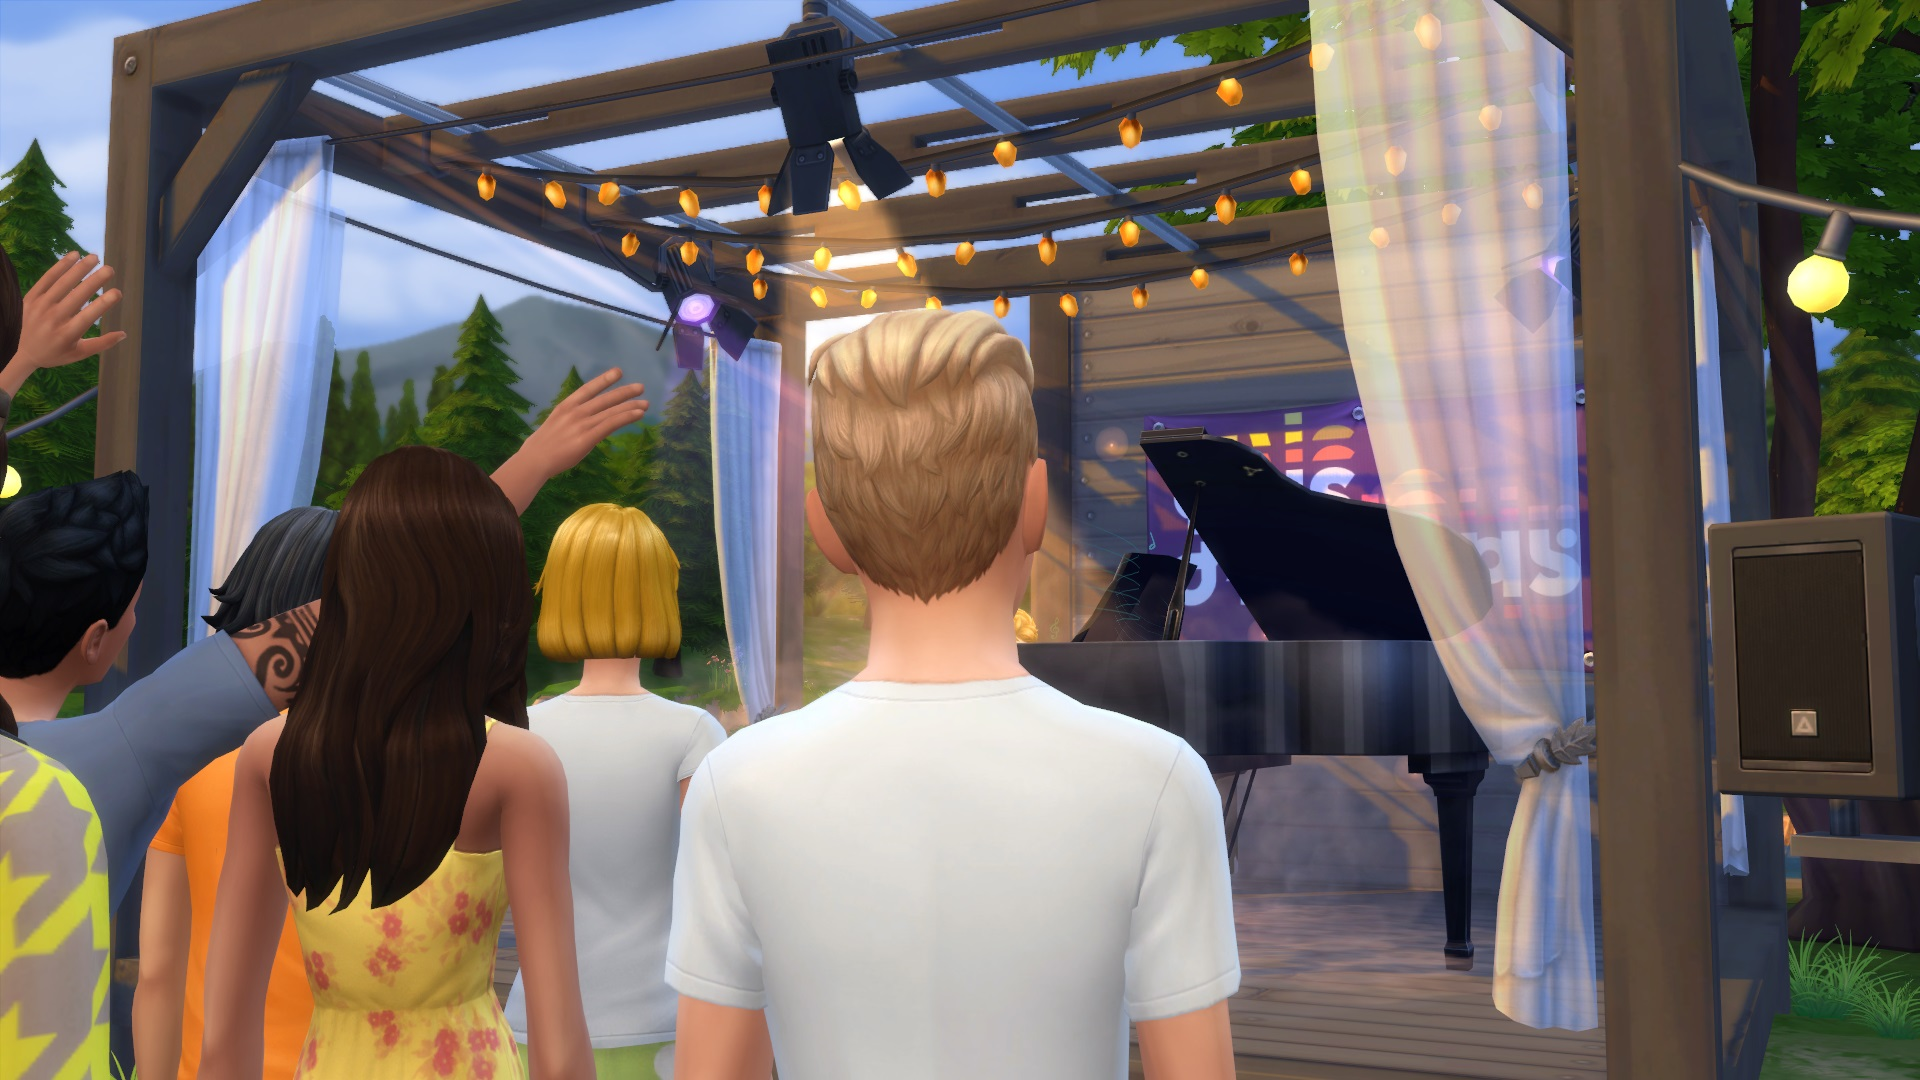 An in-game photo of the Sims Sessions stage, but a Sim blocks the view.